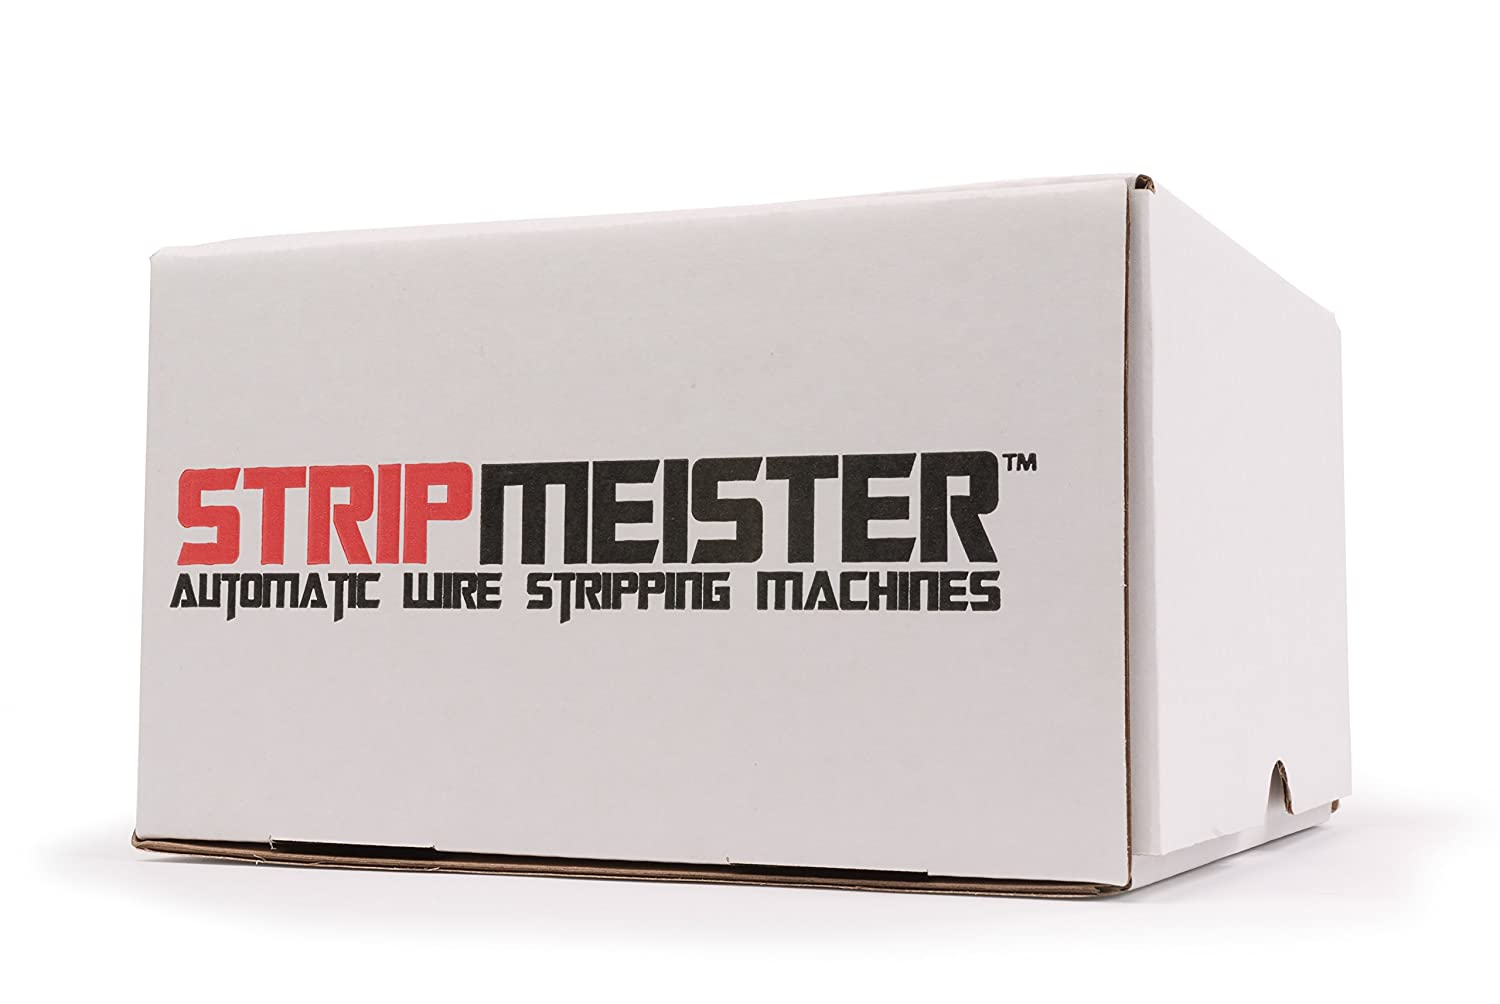 Stripmeister Automatic Wire Stripping Machine Tools Wiring Money To Canada Home Improvement